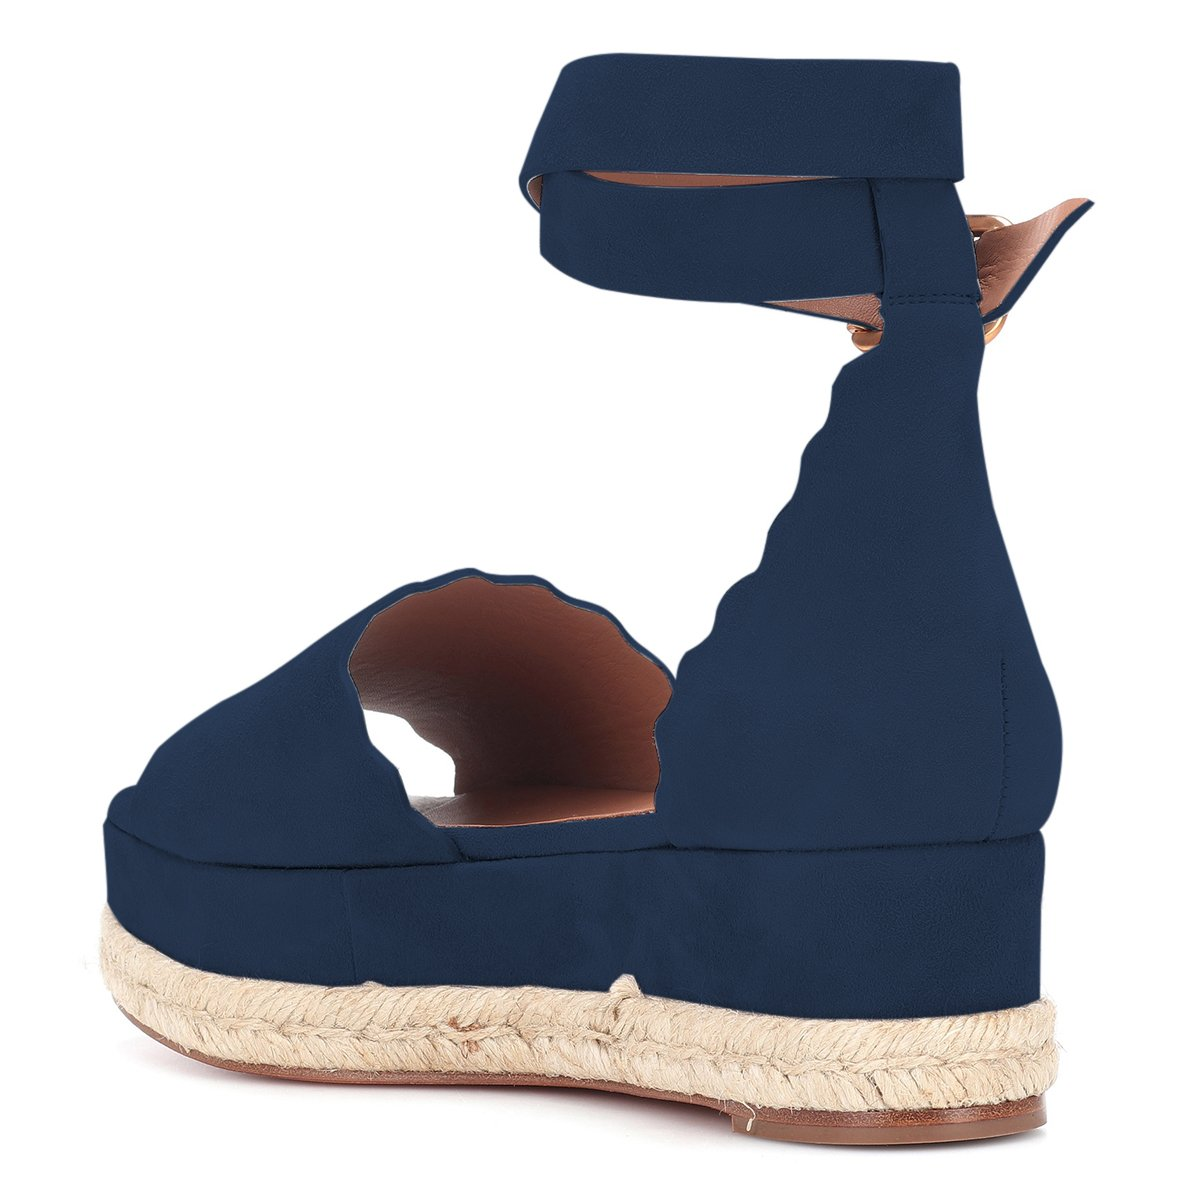 YDN Women Espadrille Wedge Peep Toe Ankle Straps Wedge Espadrille Sandals Low Heels Platform Shoes with Buckle B07DCP38PM 7 M US|Navy 40a02a